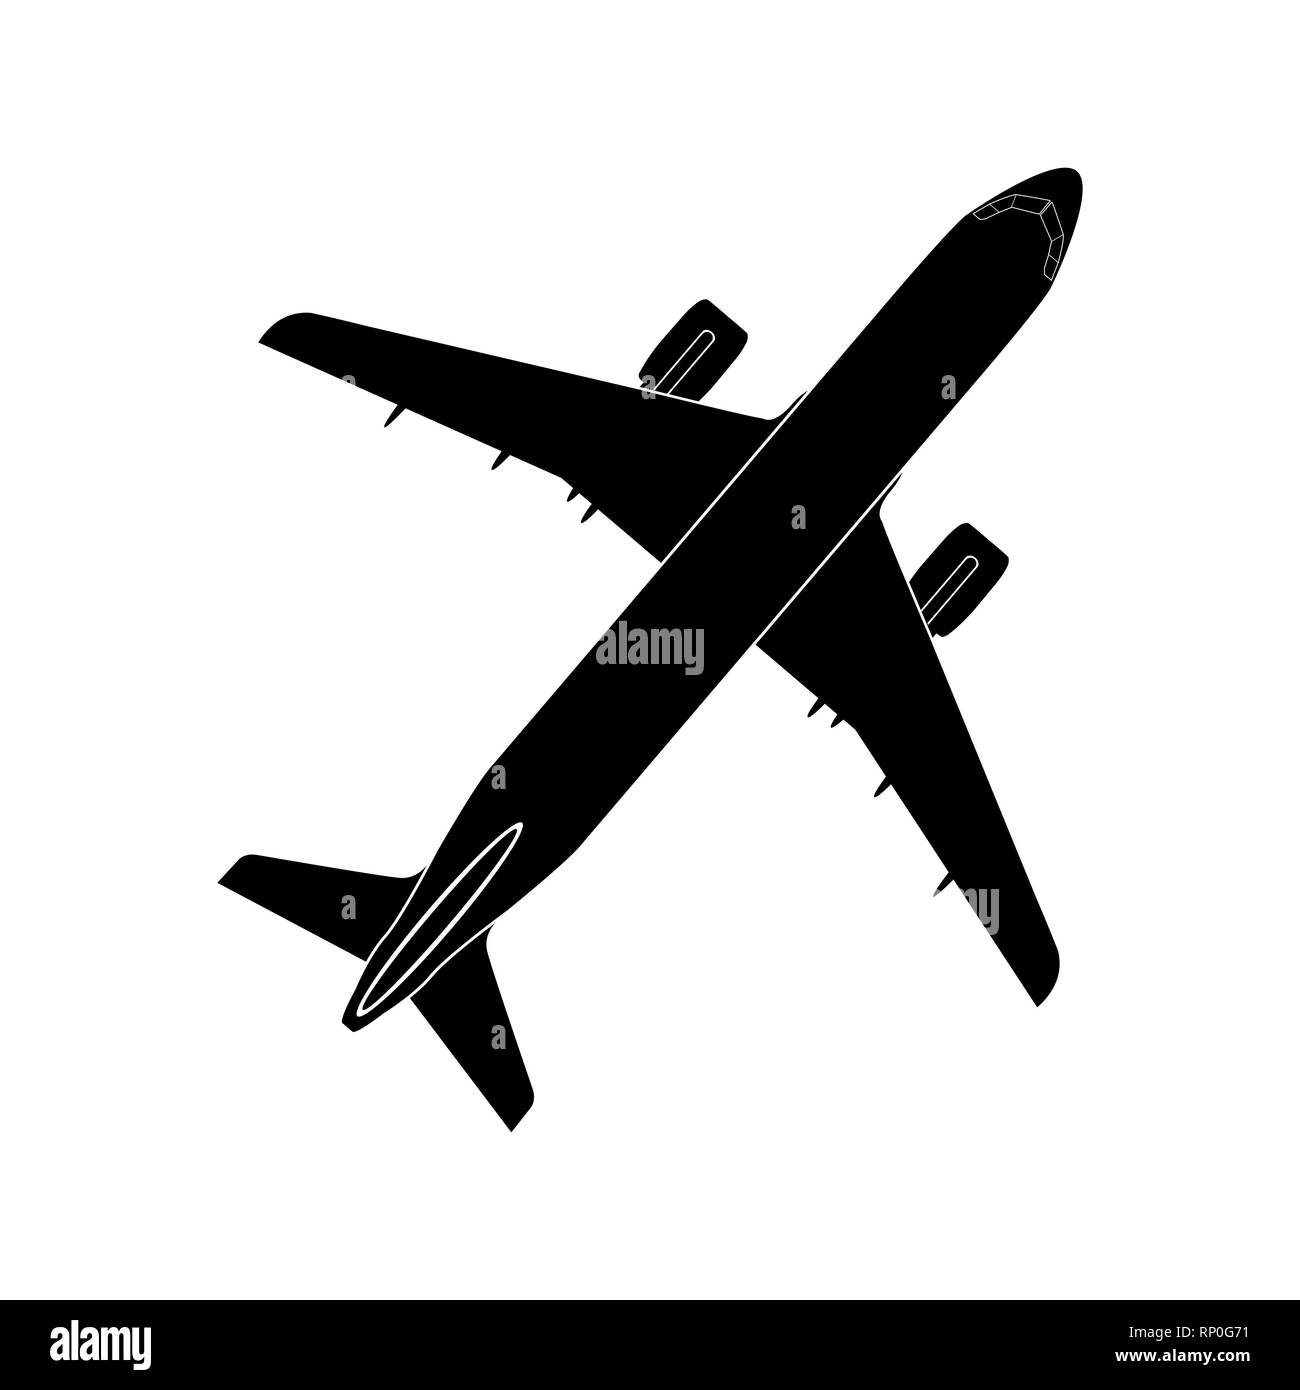 simple image of turboprop jet aircraft, air transport - Stock Image